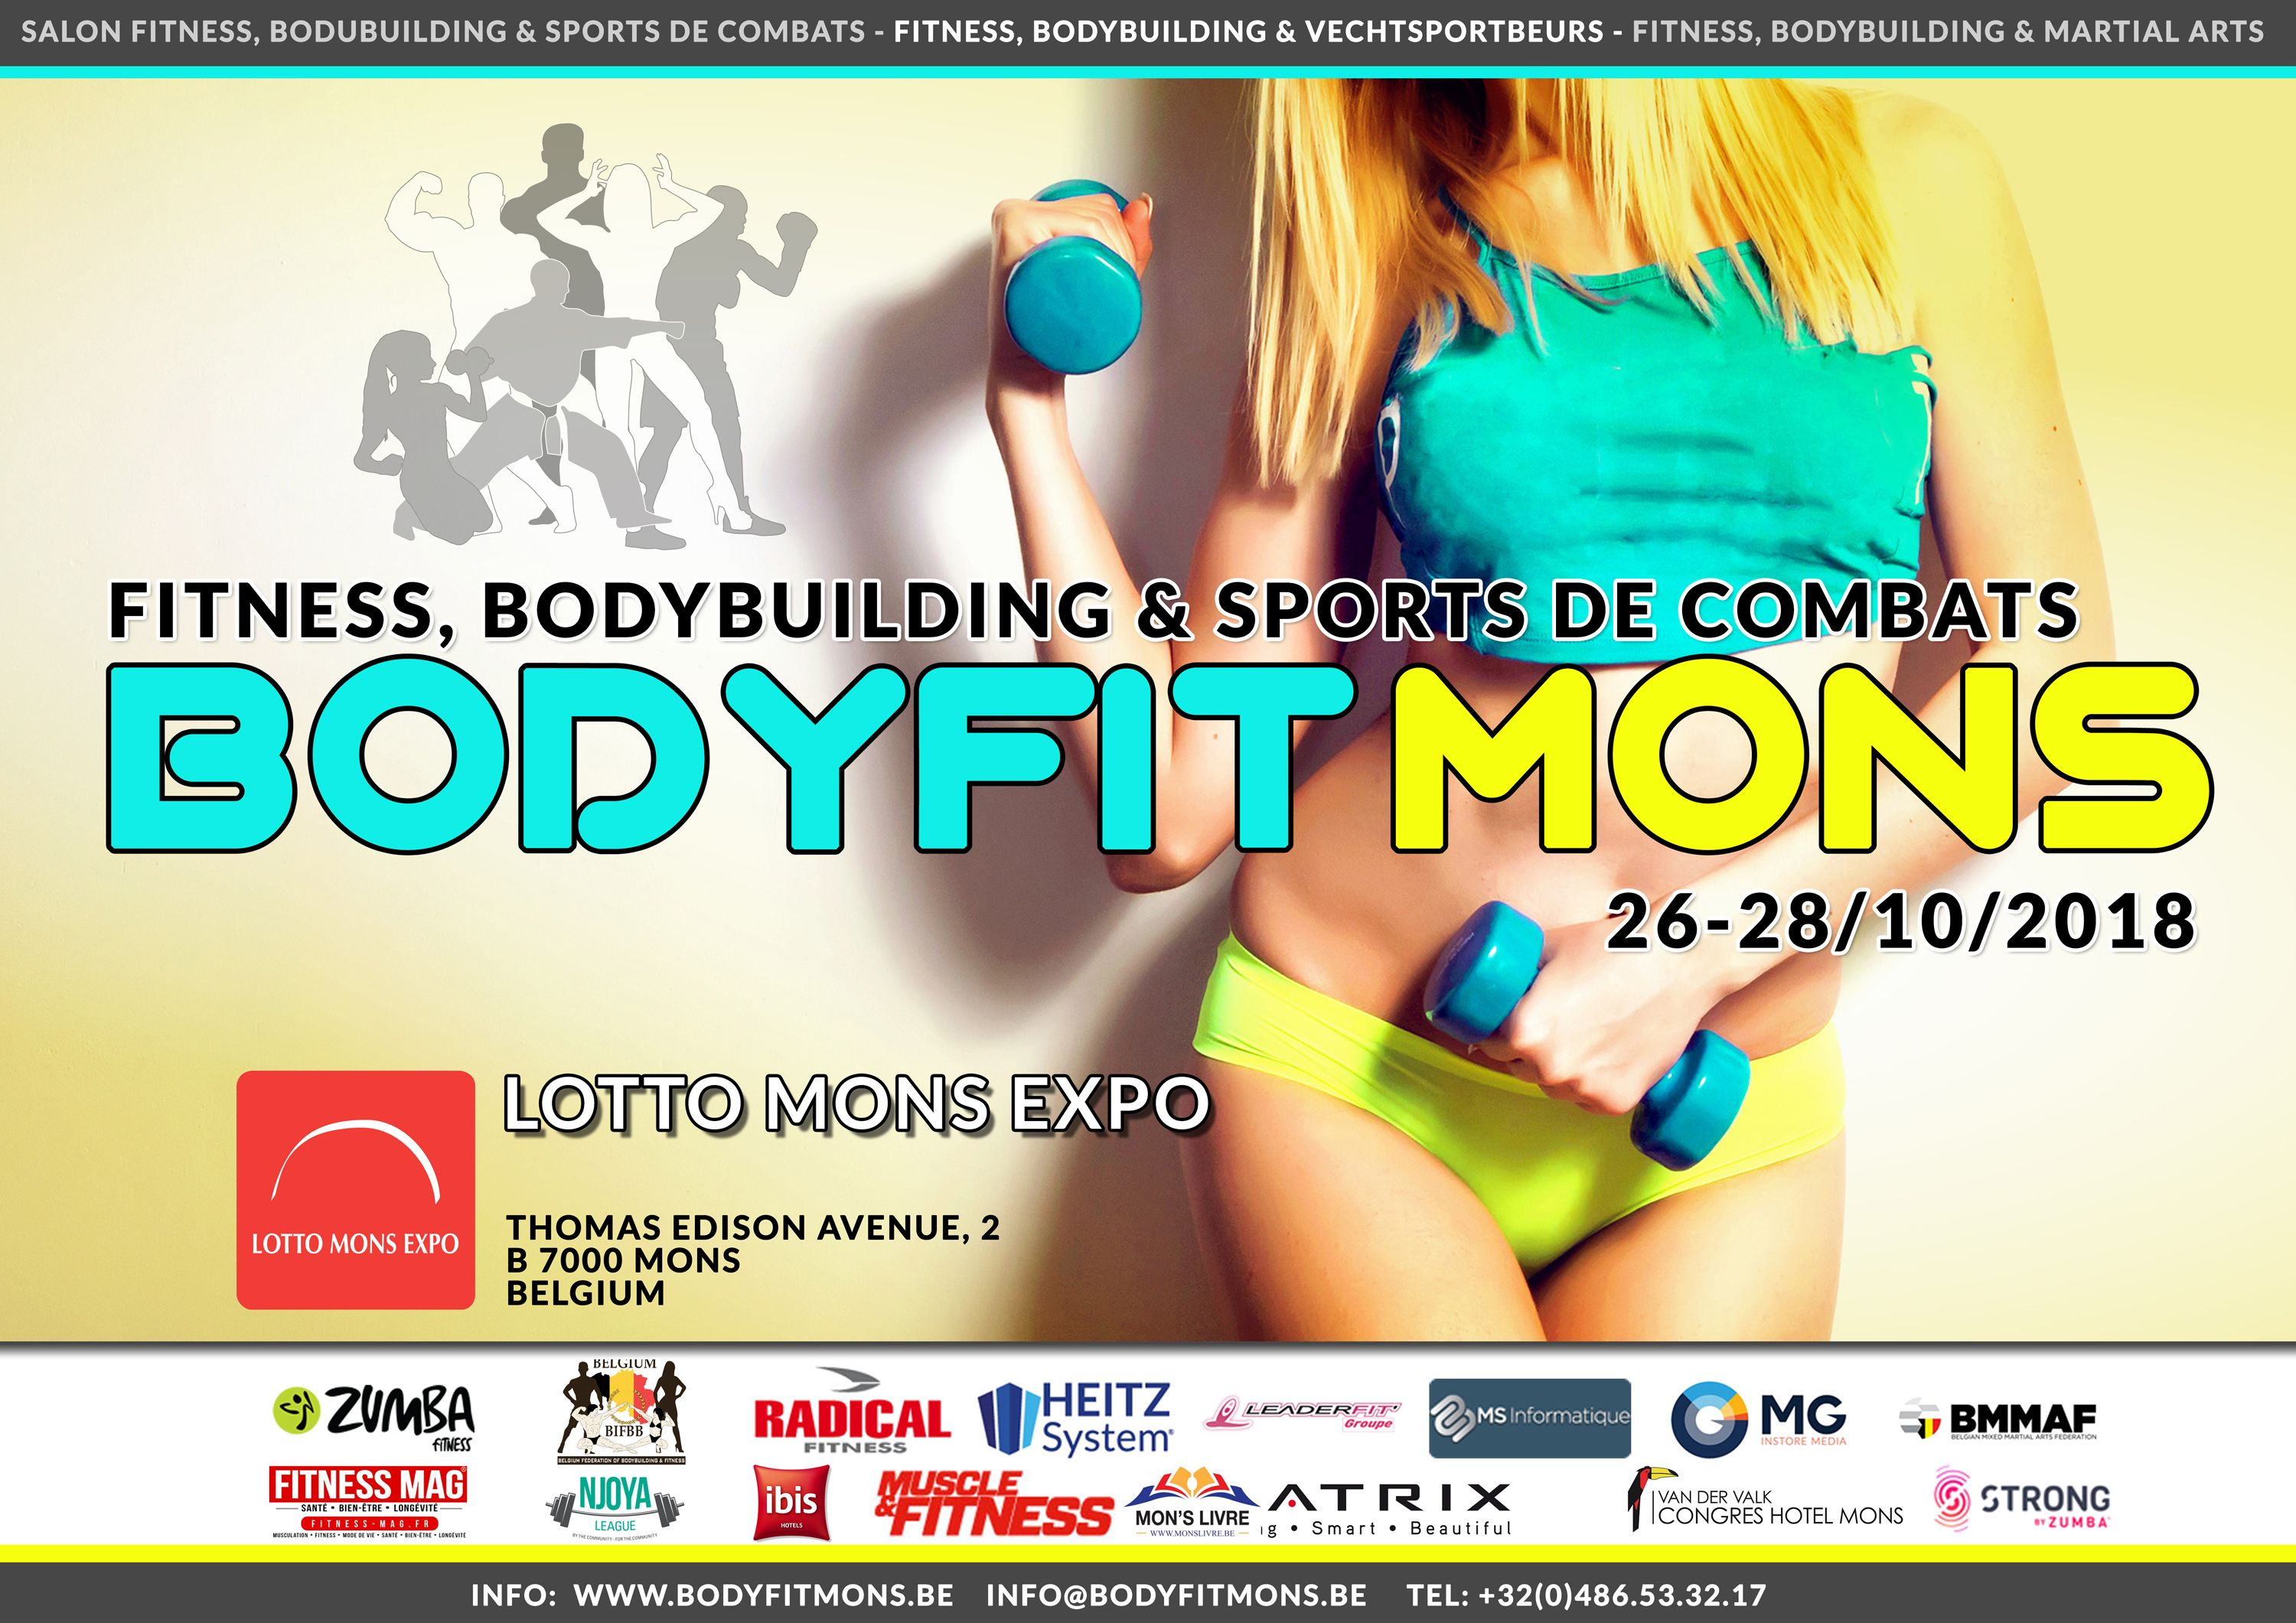 From 26 To 28 October 2018 The First Edition Of Bodyfit Mons Will Take Place At The Lotto Mons Expo In Mons Belgium It Will Be An Expo For Professionals And